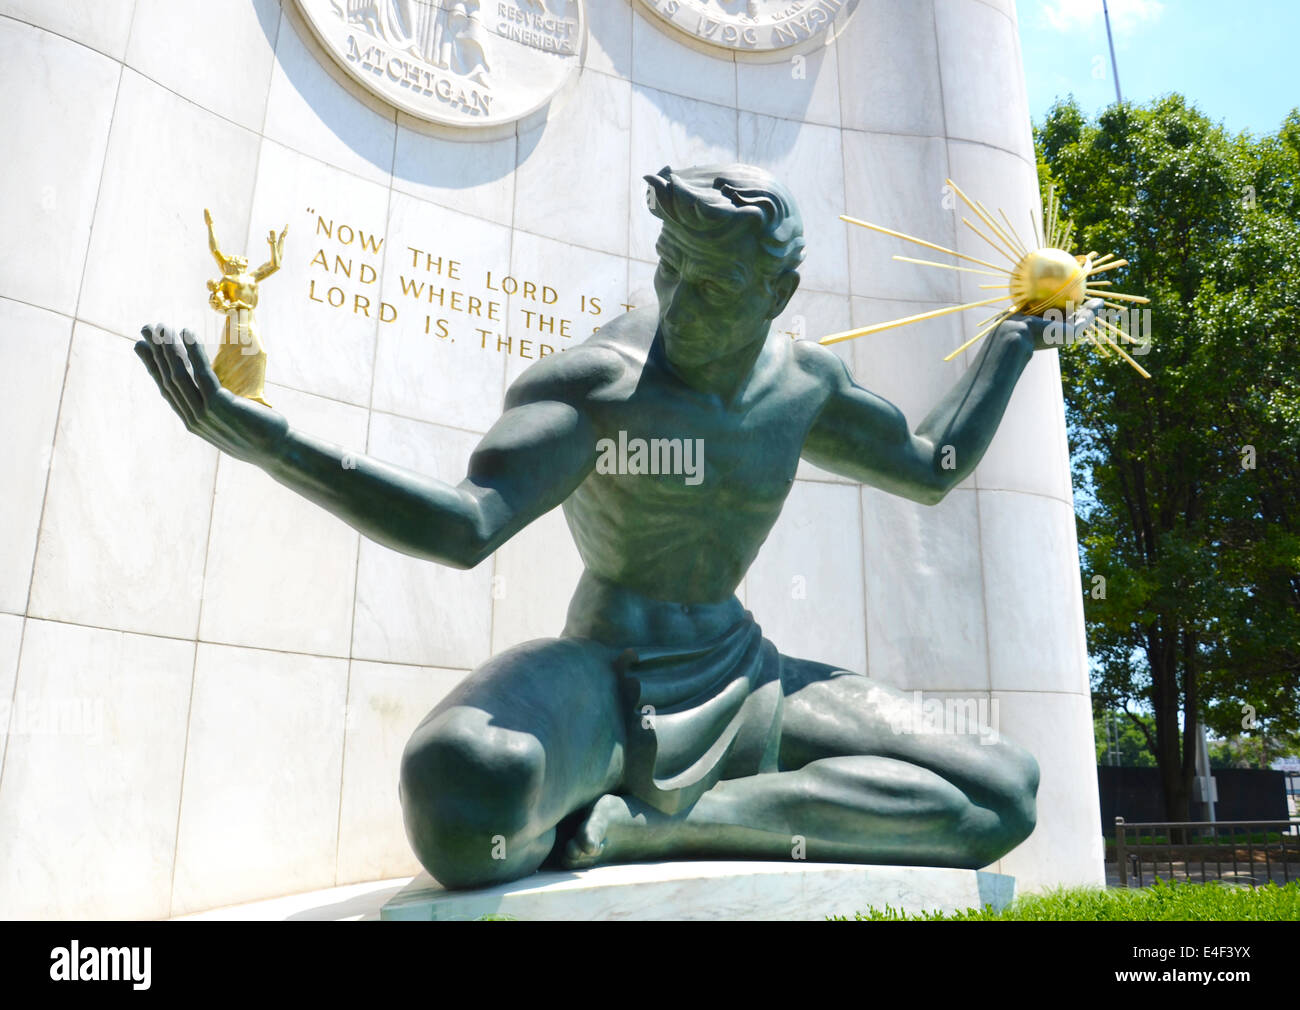 DETROIT, MI - JULY 6: The Spirit of Detroit monument in Detroit, MI, shown here on July 6, 2014, was featured in - Stock Image